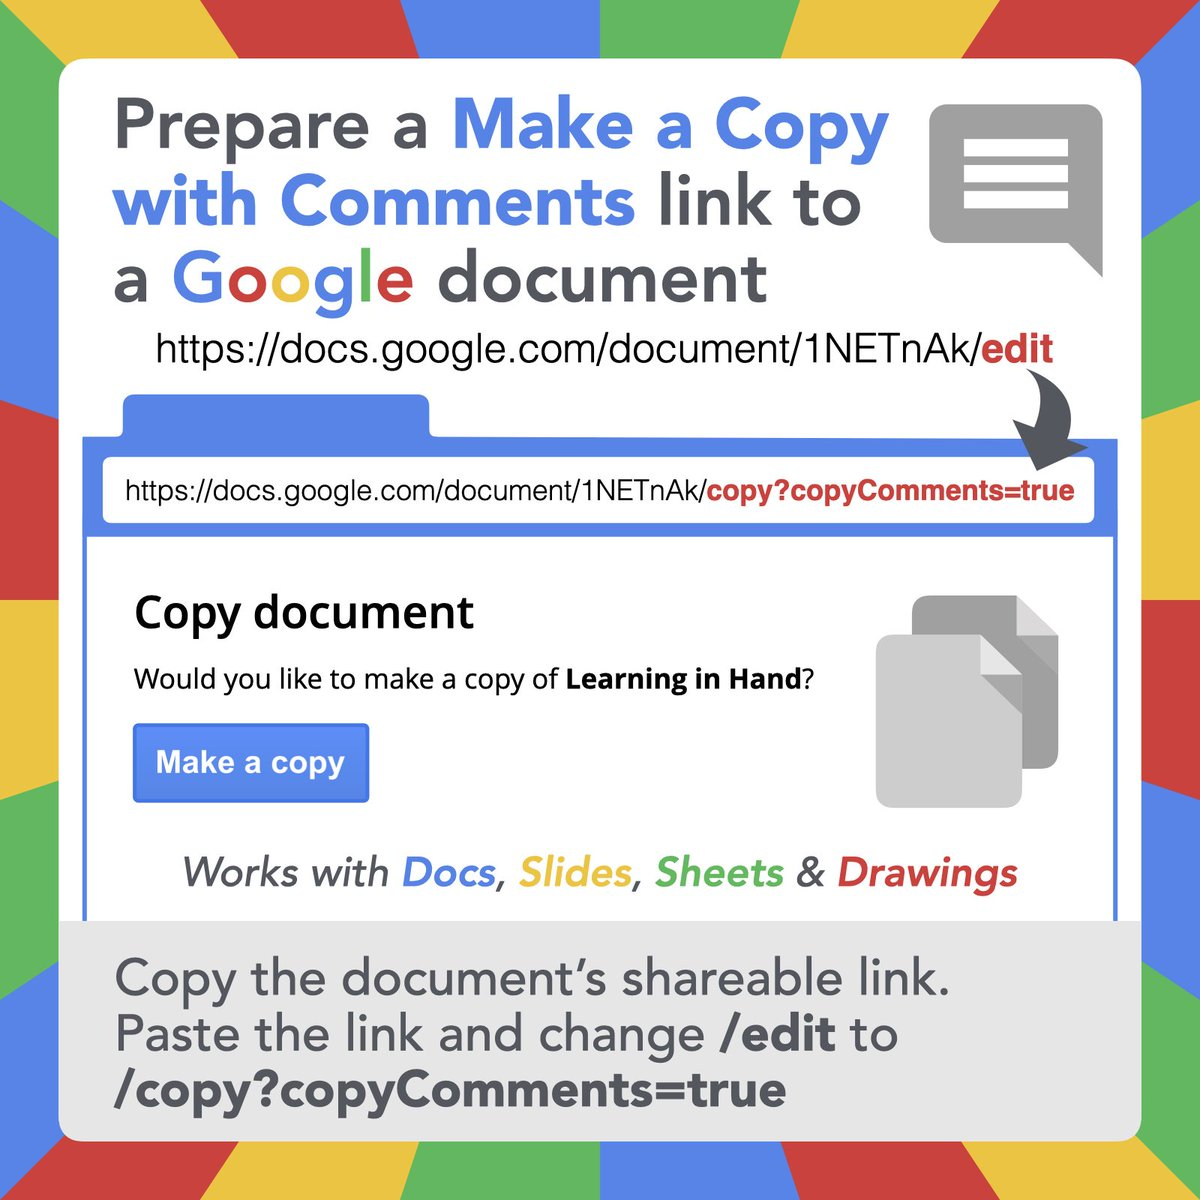 📑 You can force others to make a copy of a document and include the document's comments. The comments may contain annotations, helpful hyperlinks, question stems, etc. #GoogleEDU #gsuiteedu https://t.co/hslLQNUM2b